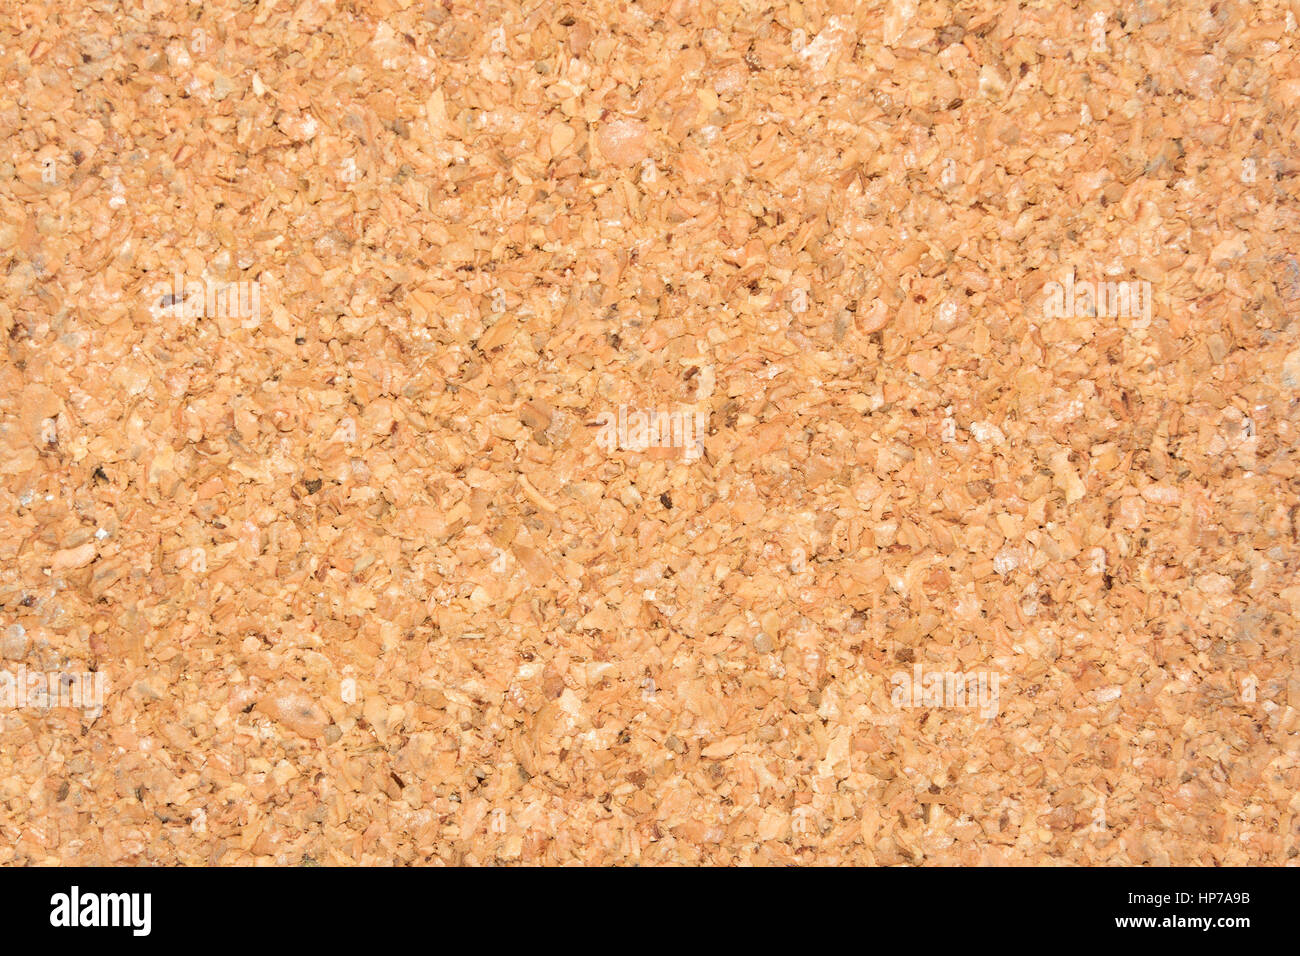 Cortical texture of wood. natural color and texture. Cork - Stock Image